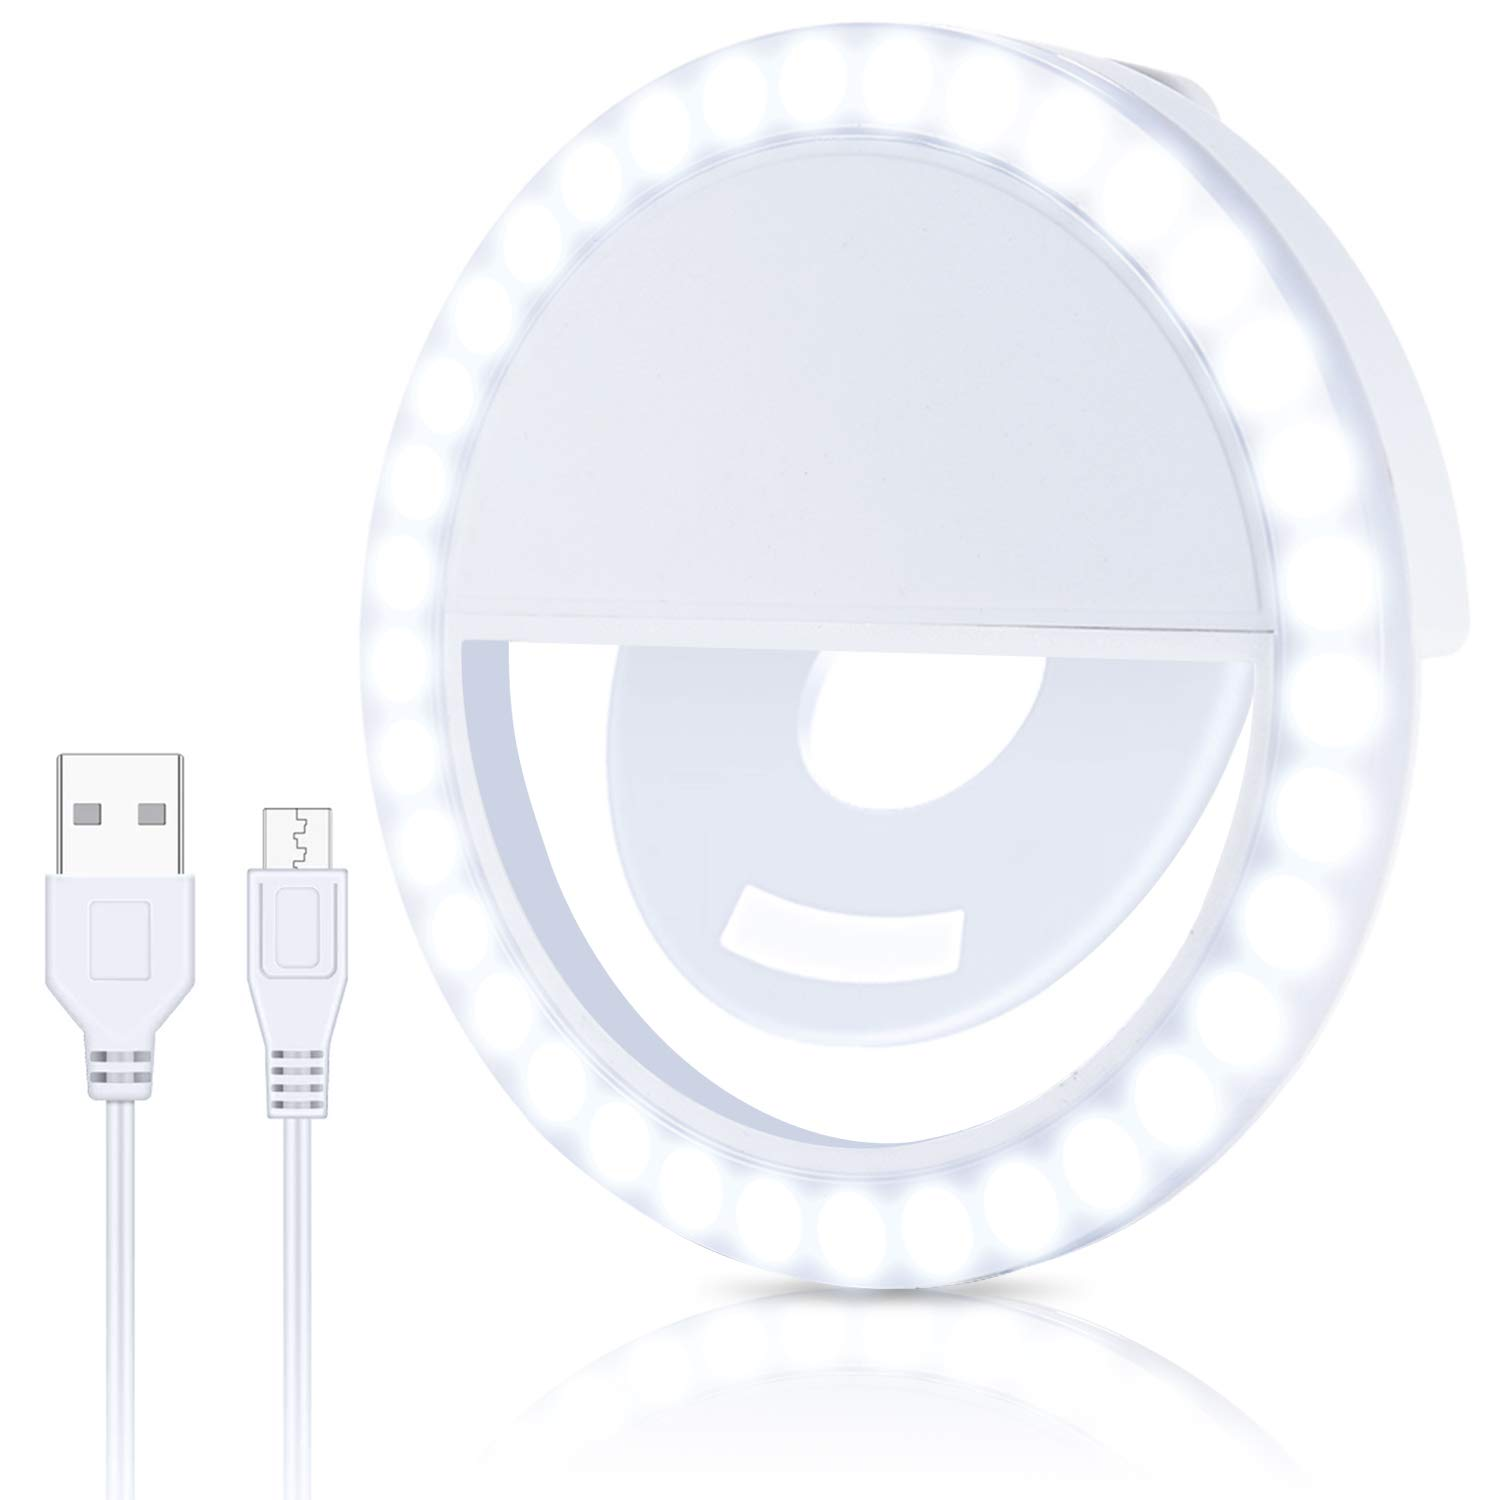 Selfie Ring Light Portable Rechargeable Circle Camera Phone Light with 36 LEDs /& 3 Brightness Modes is Ideal for Photography and Videos Compatible with Android iPhone Smart Phones Laptop and iPads